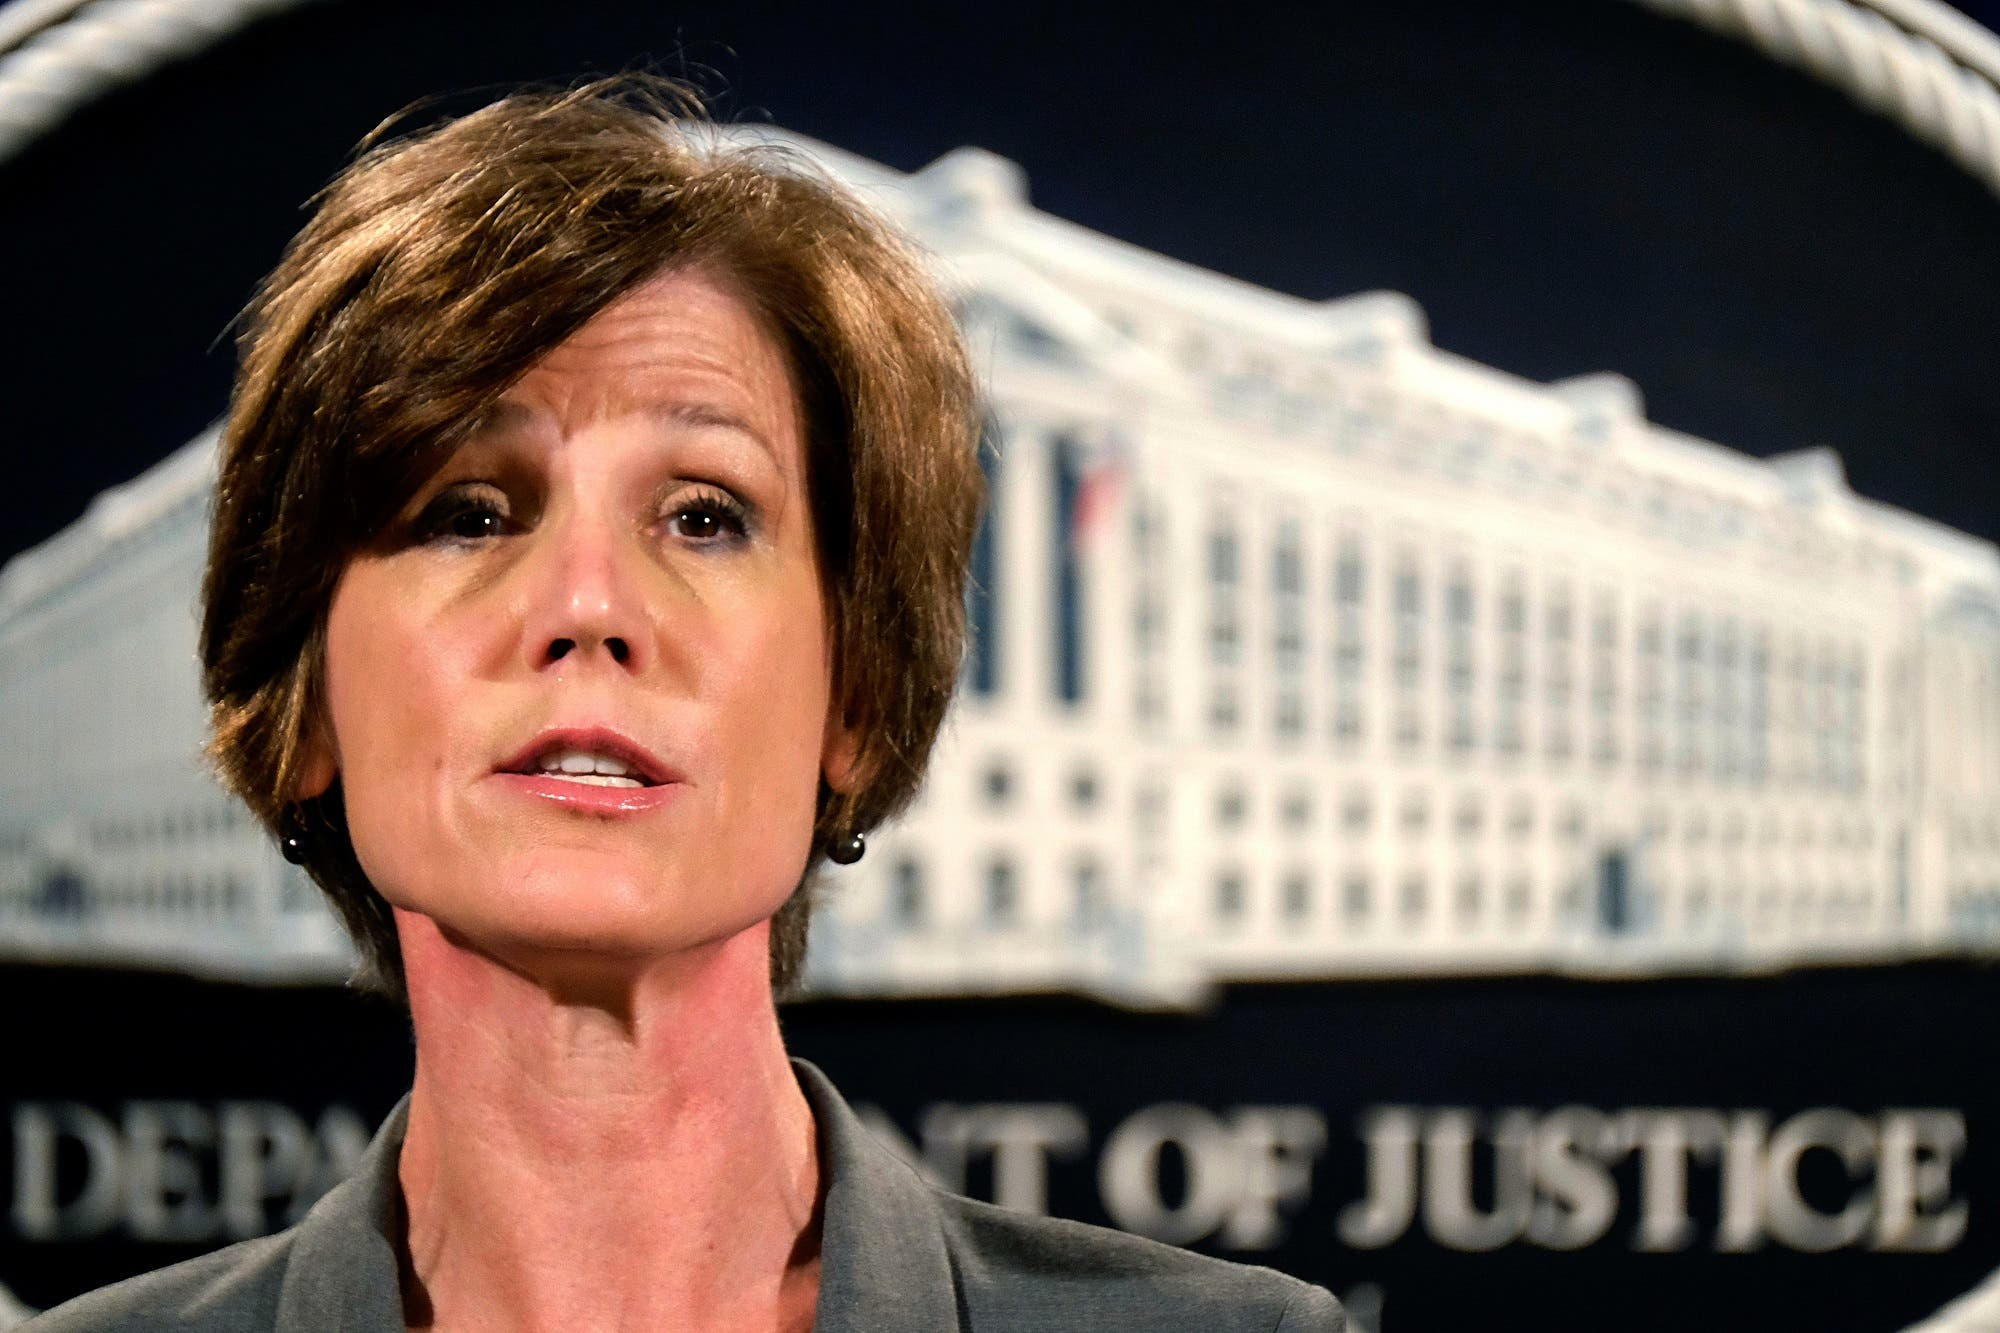 Yates on Monday told Justice Department lawyers in a letter that they would not defend in court Trump's directive. (AP)